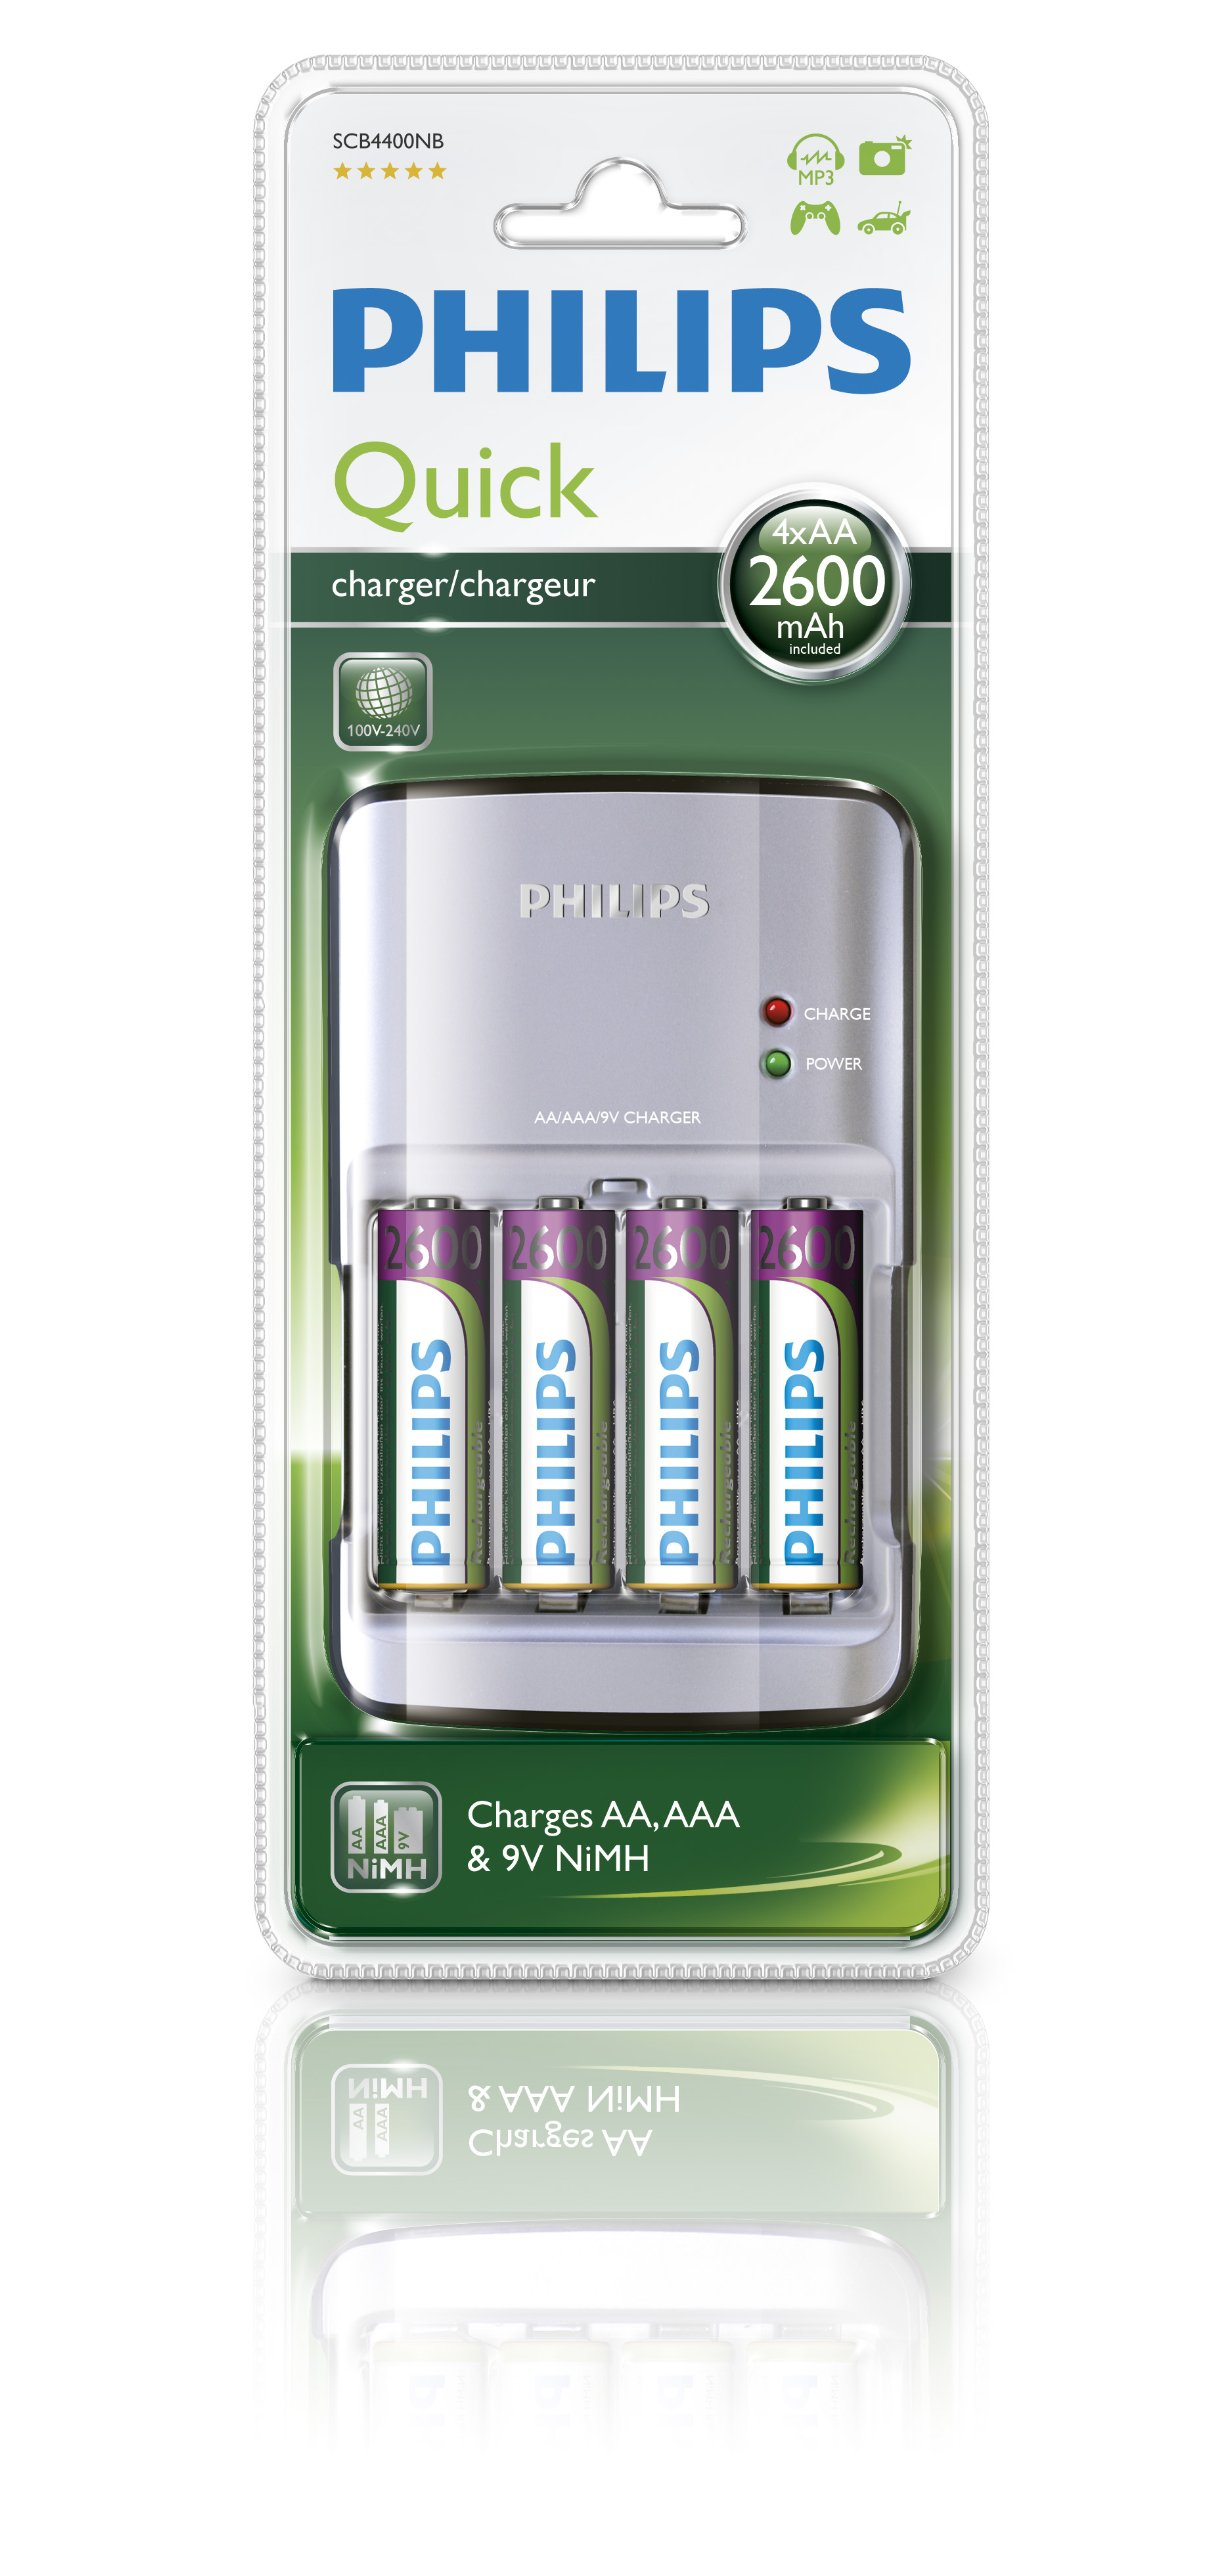 Philips SCB4400NB/12 MultiLife Caricabatterie, 2700 mAh, AA, Bianco